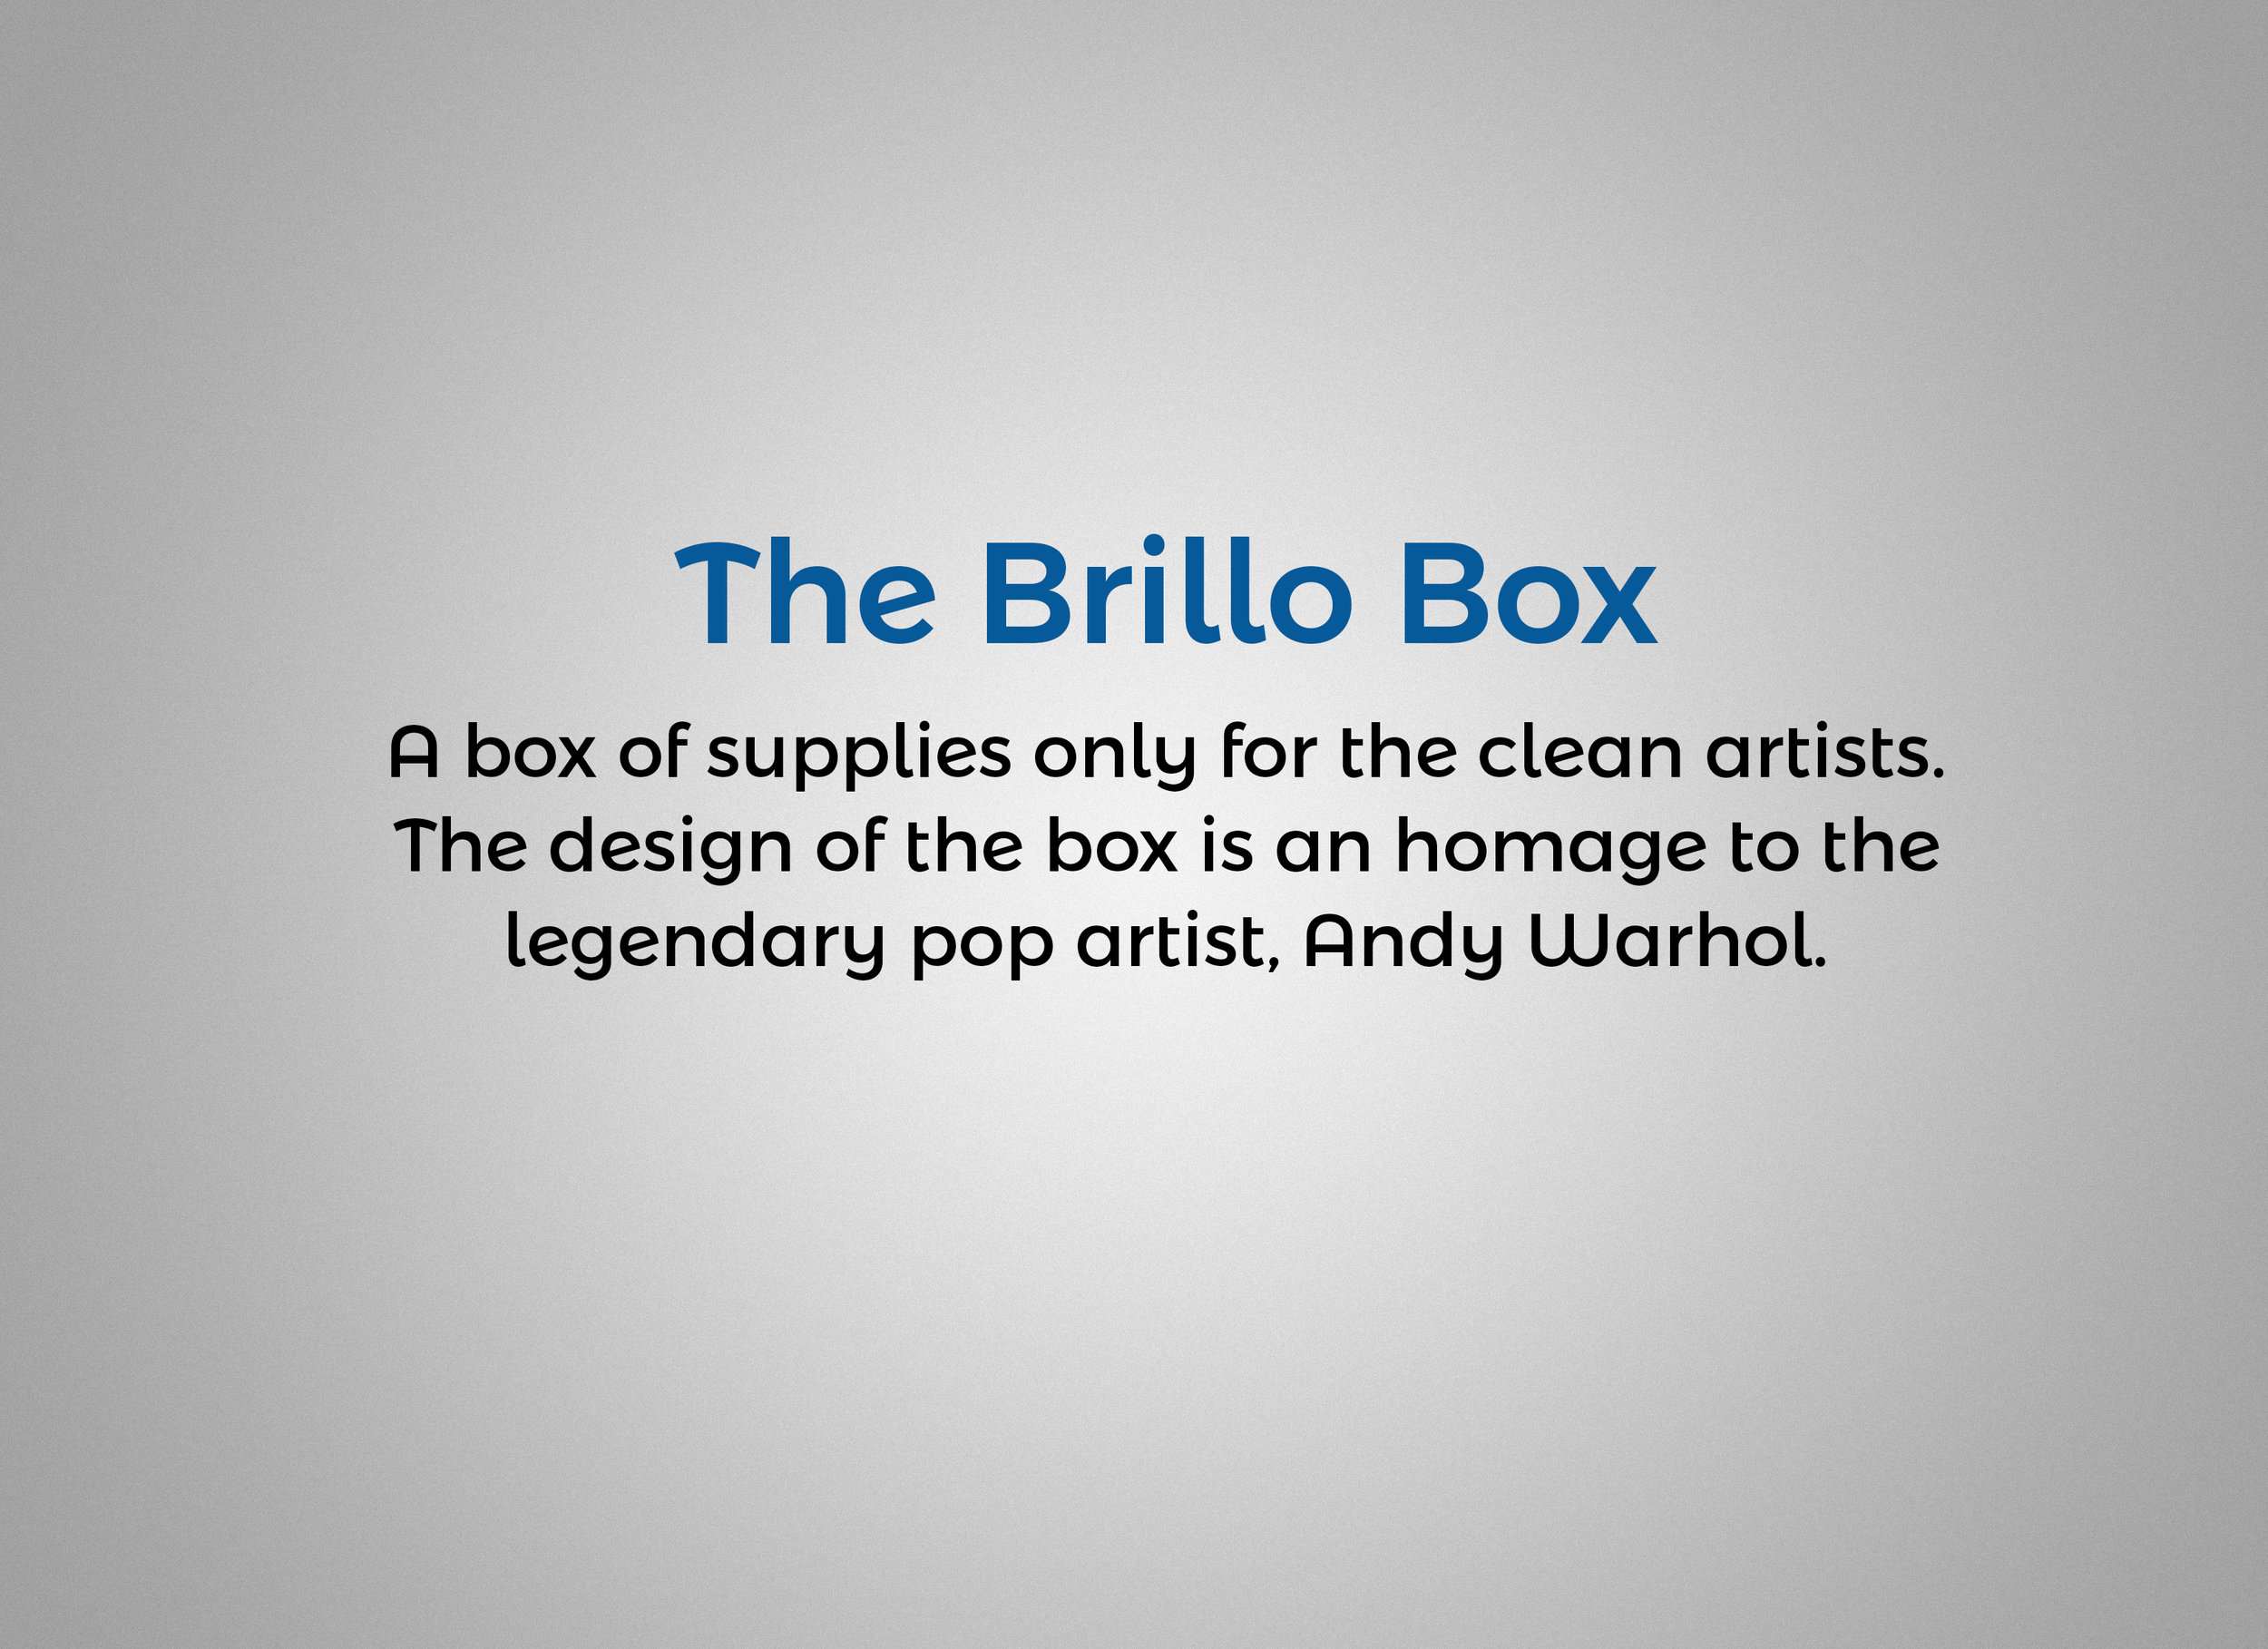 BrilloBox_Description.jpg